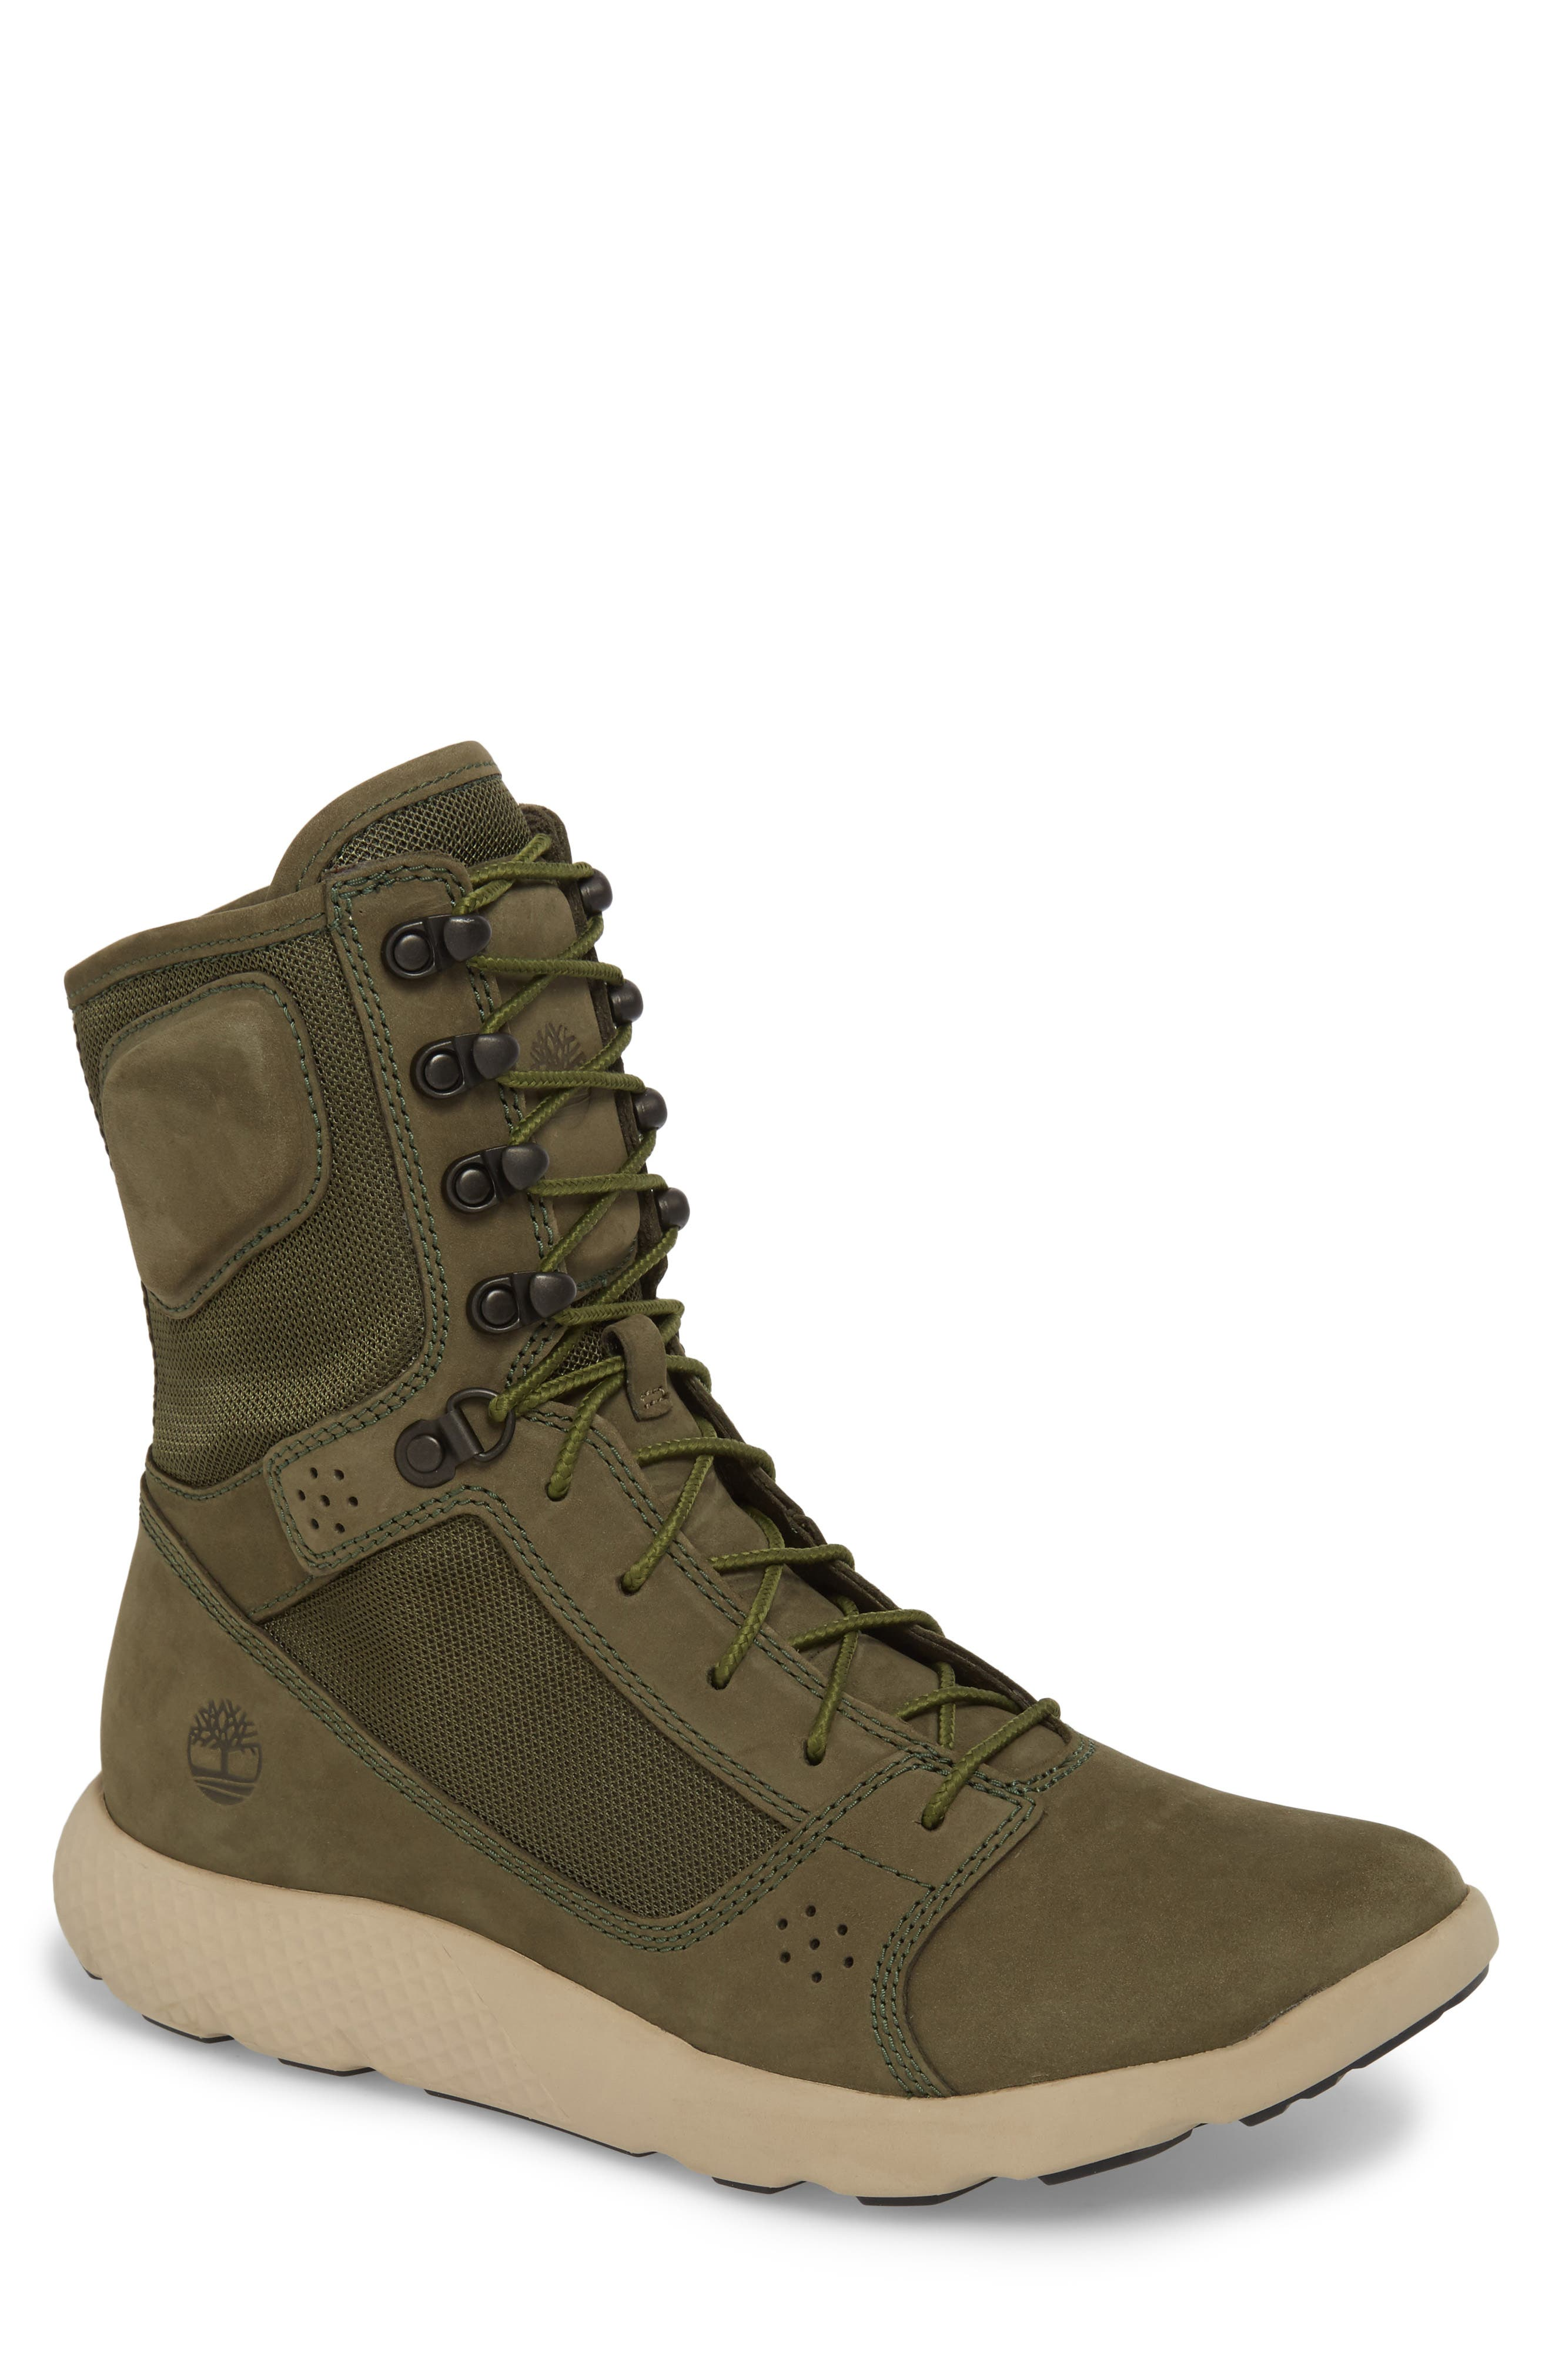 FlyRoam Tactical Boot,                             Main thumbnail 1, color,                             Grape Leaf Nubuck Leather